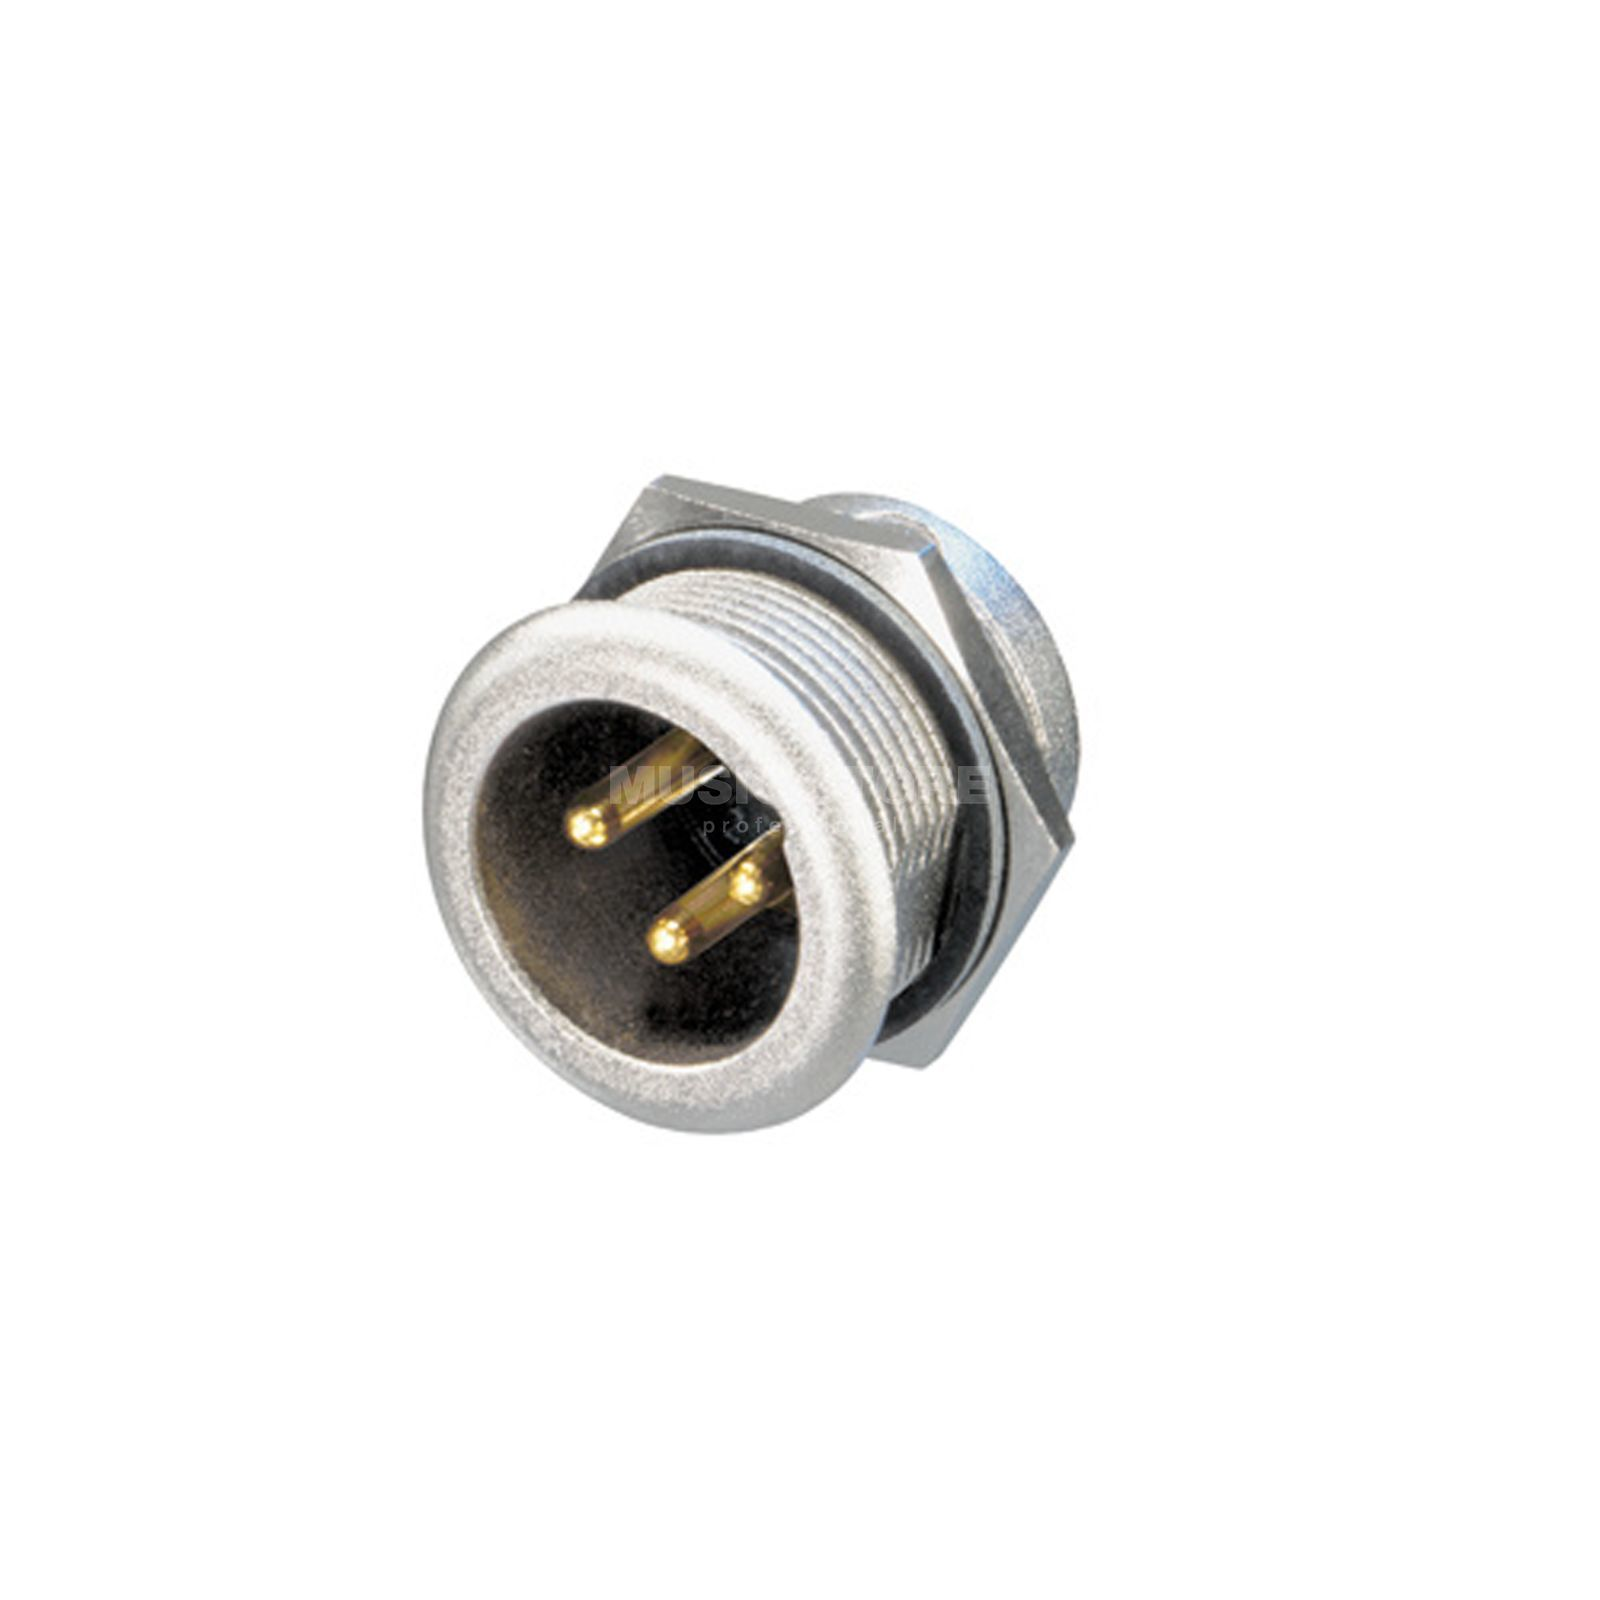 Neutrik NC3MPR-HD Chassis Connector male, 3-pole Produktbillede